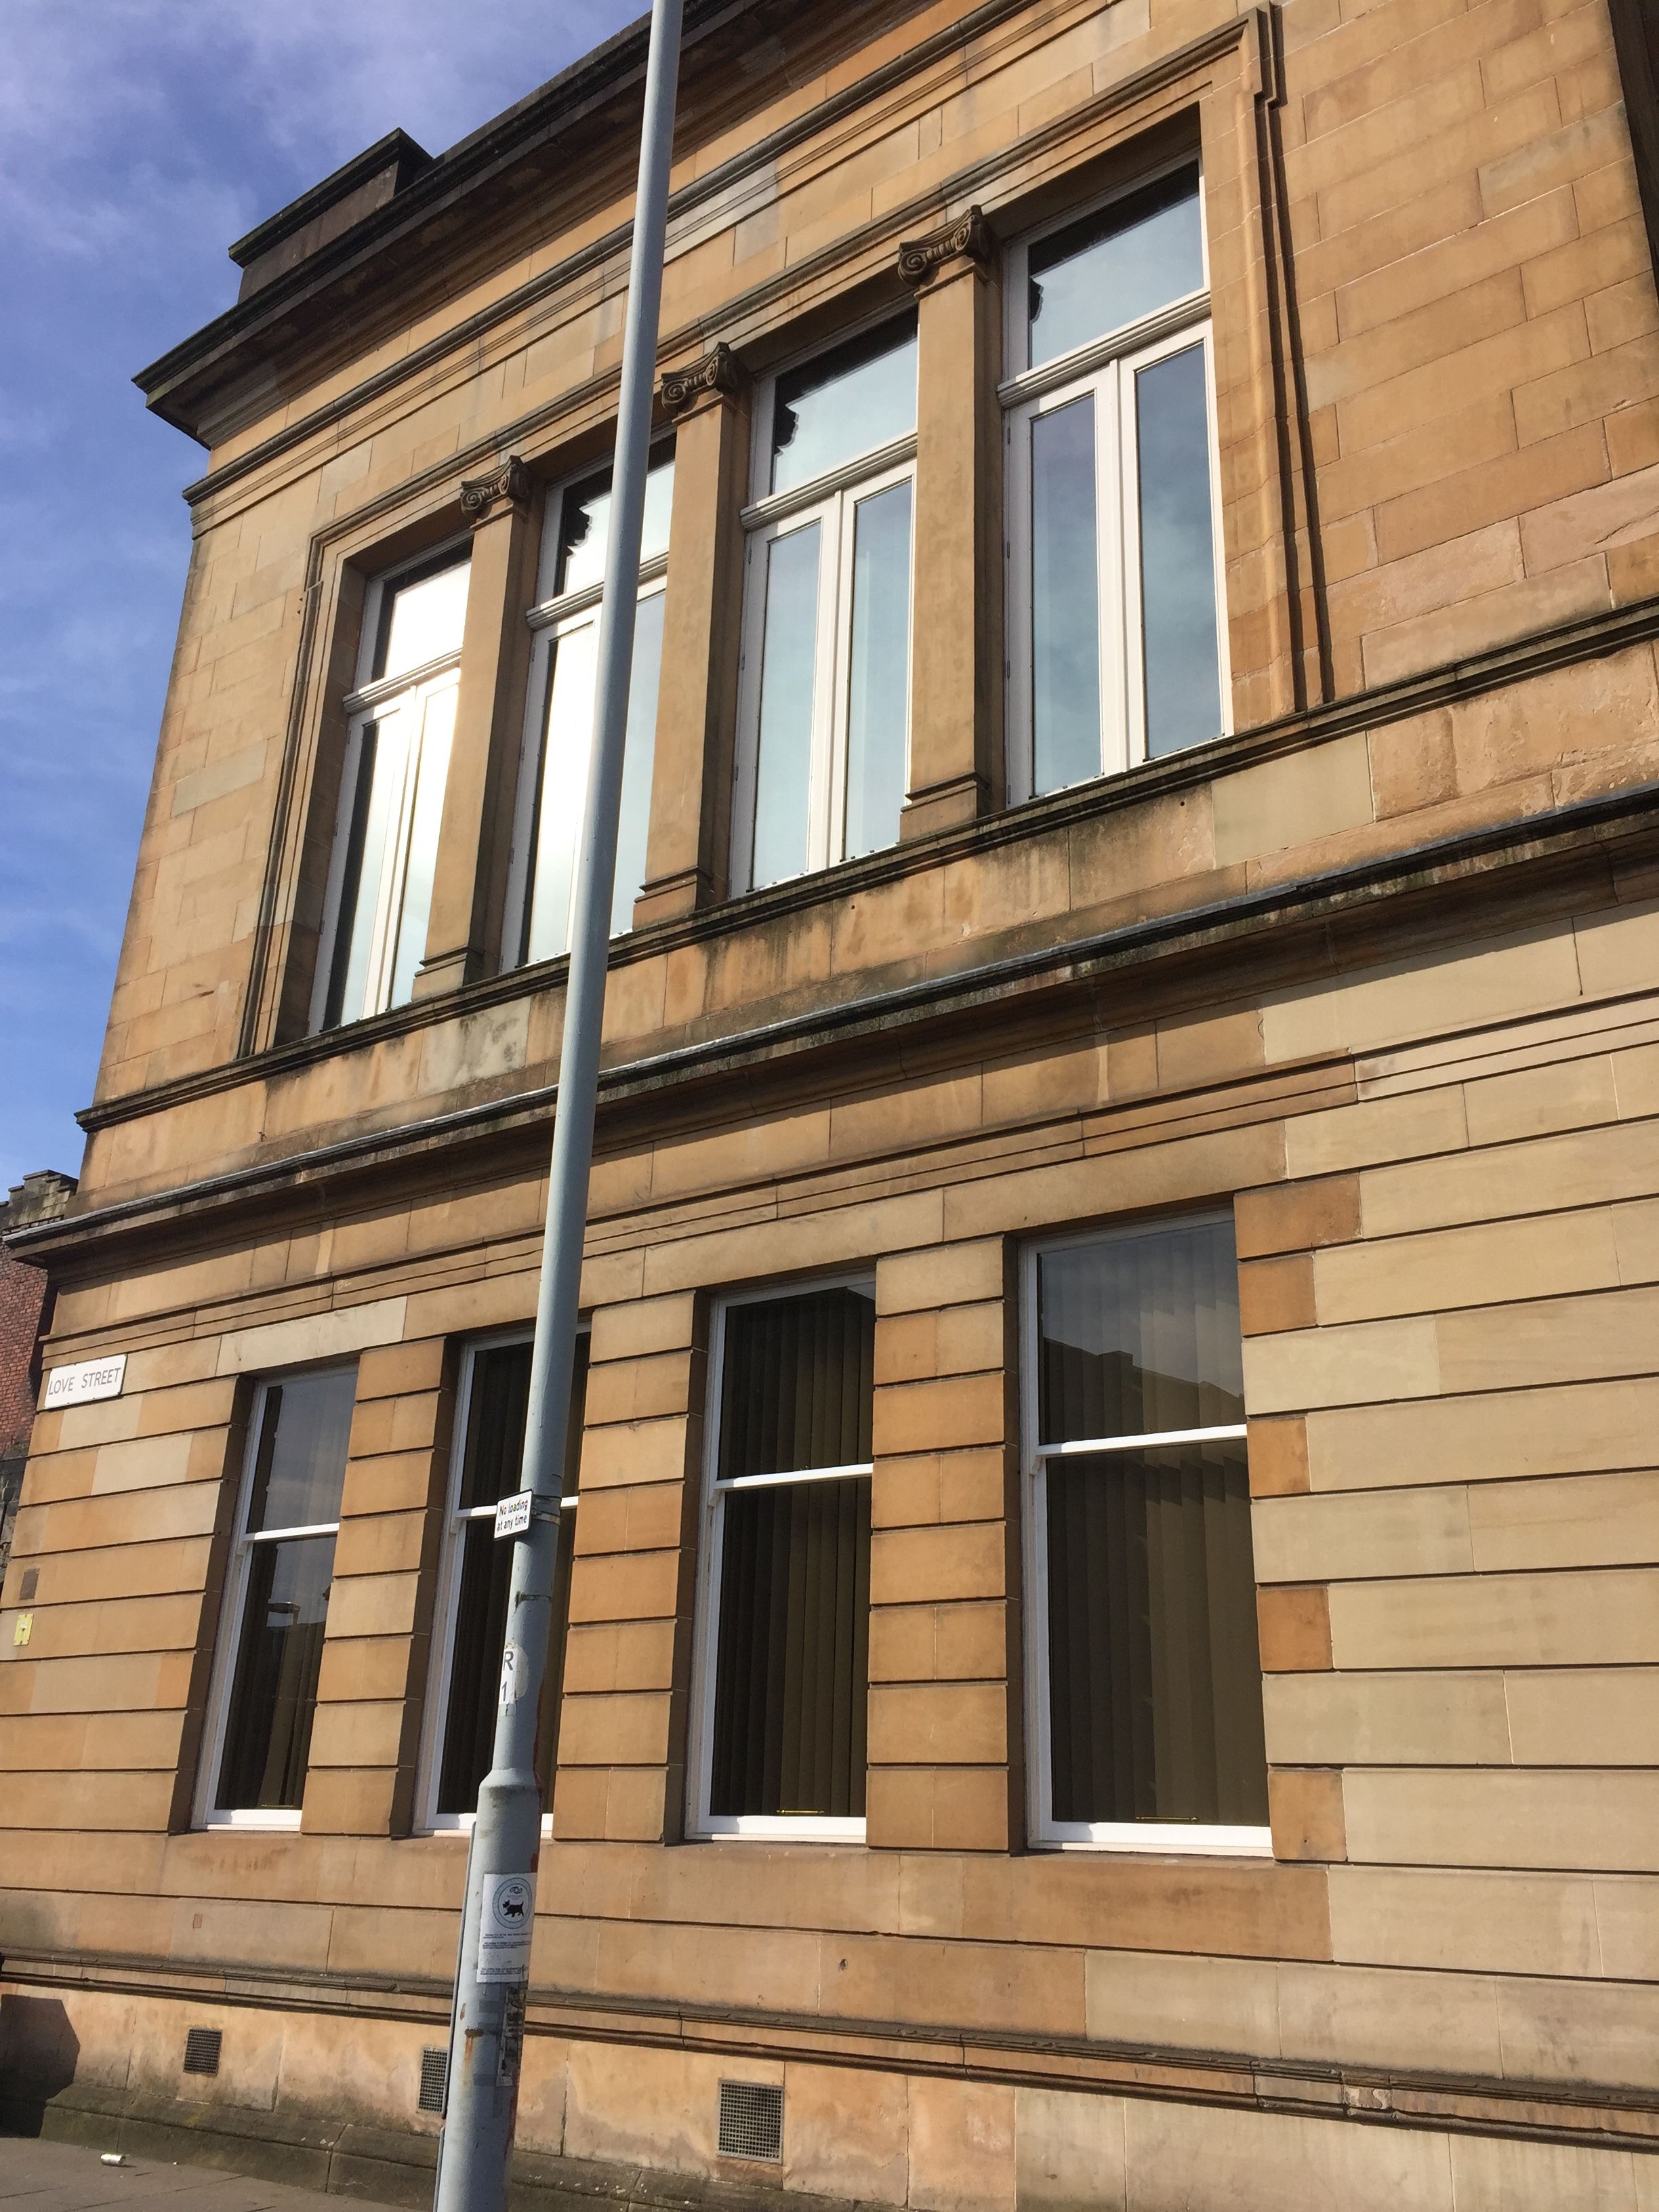 Paisley SIde Windows Darker Stone 2.JPG